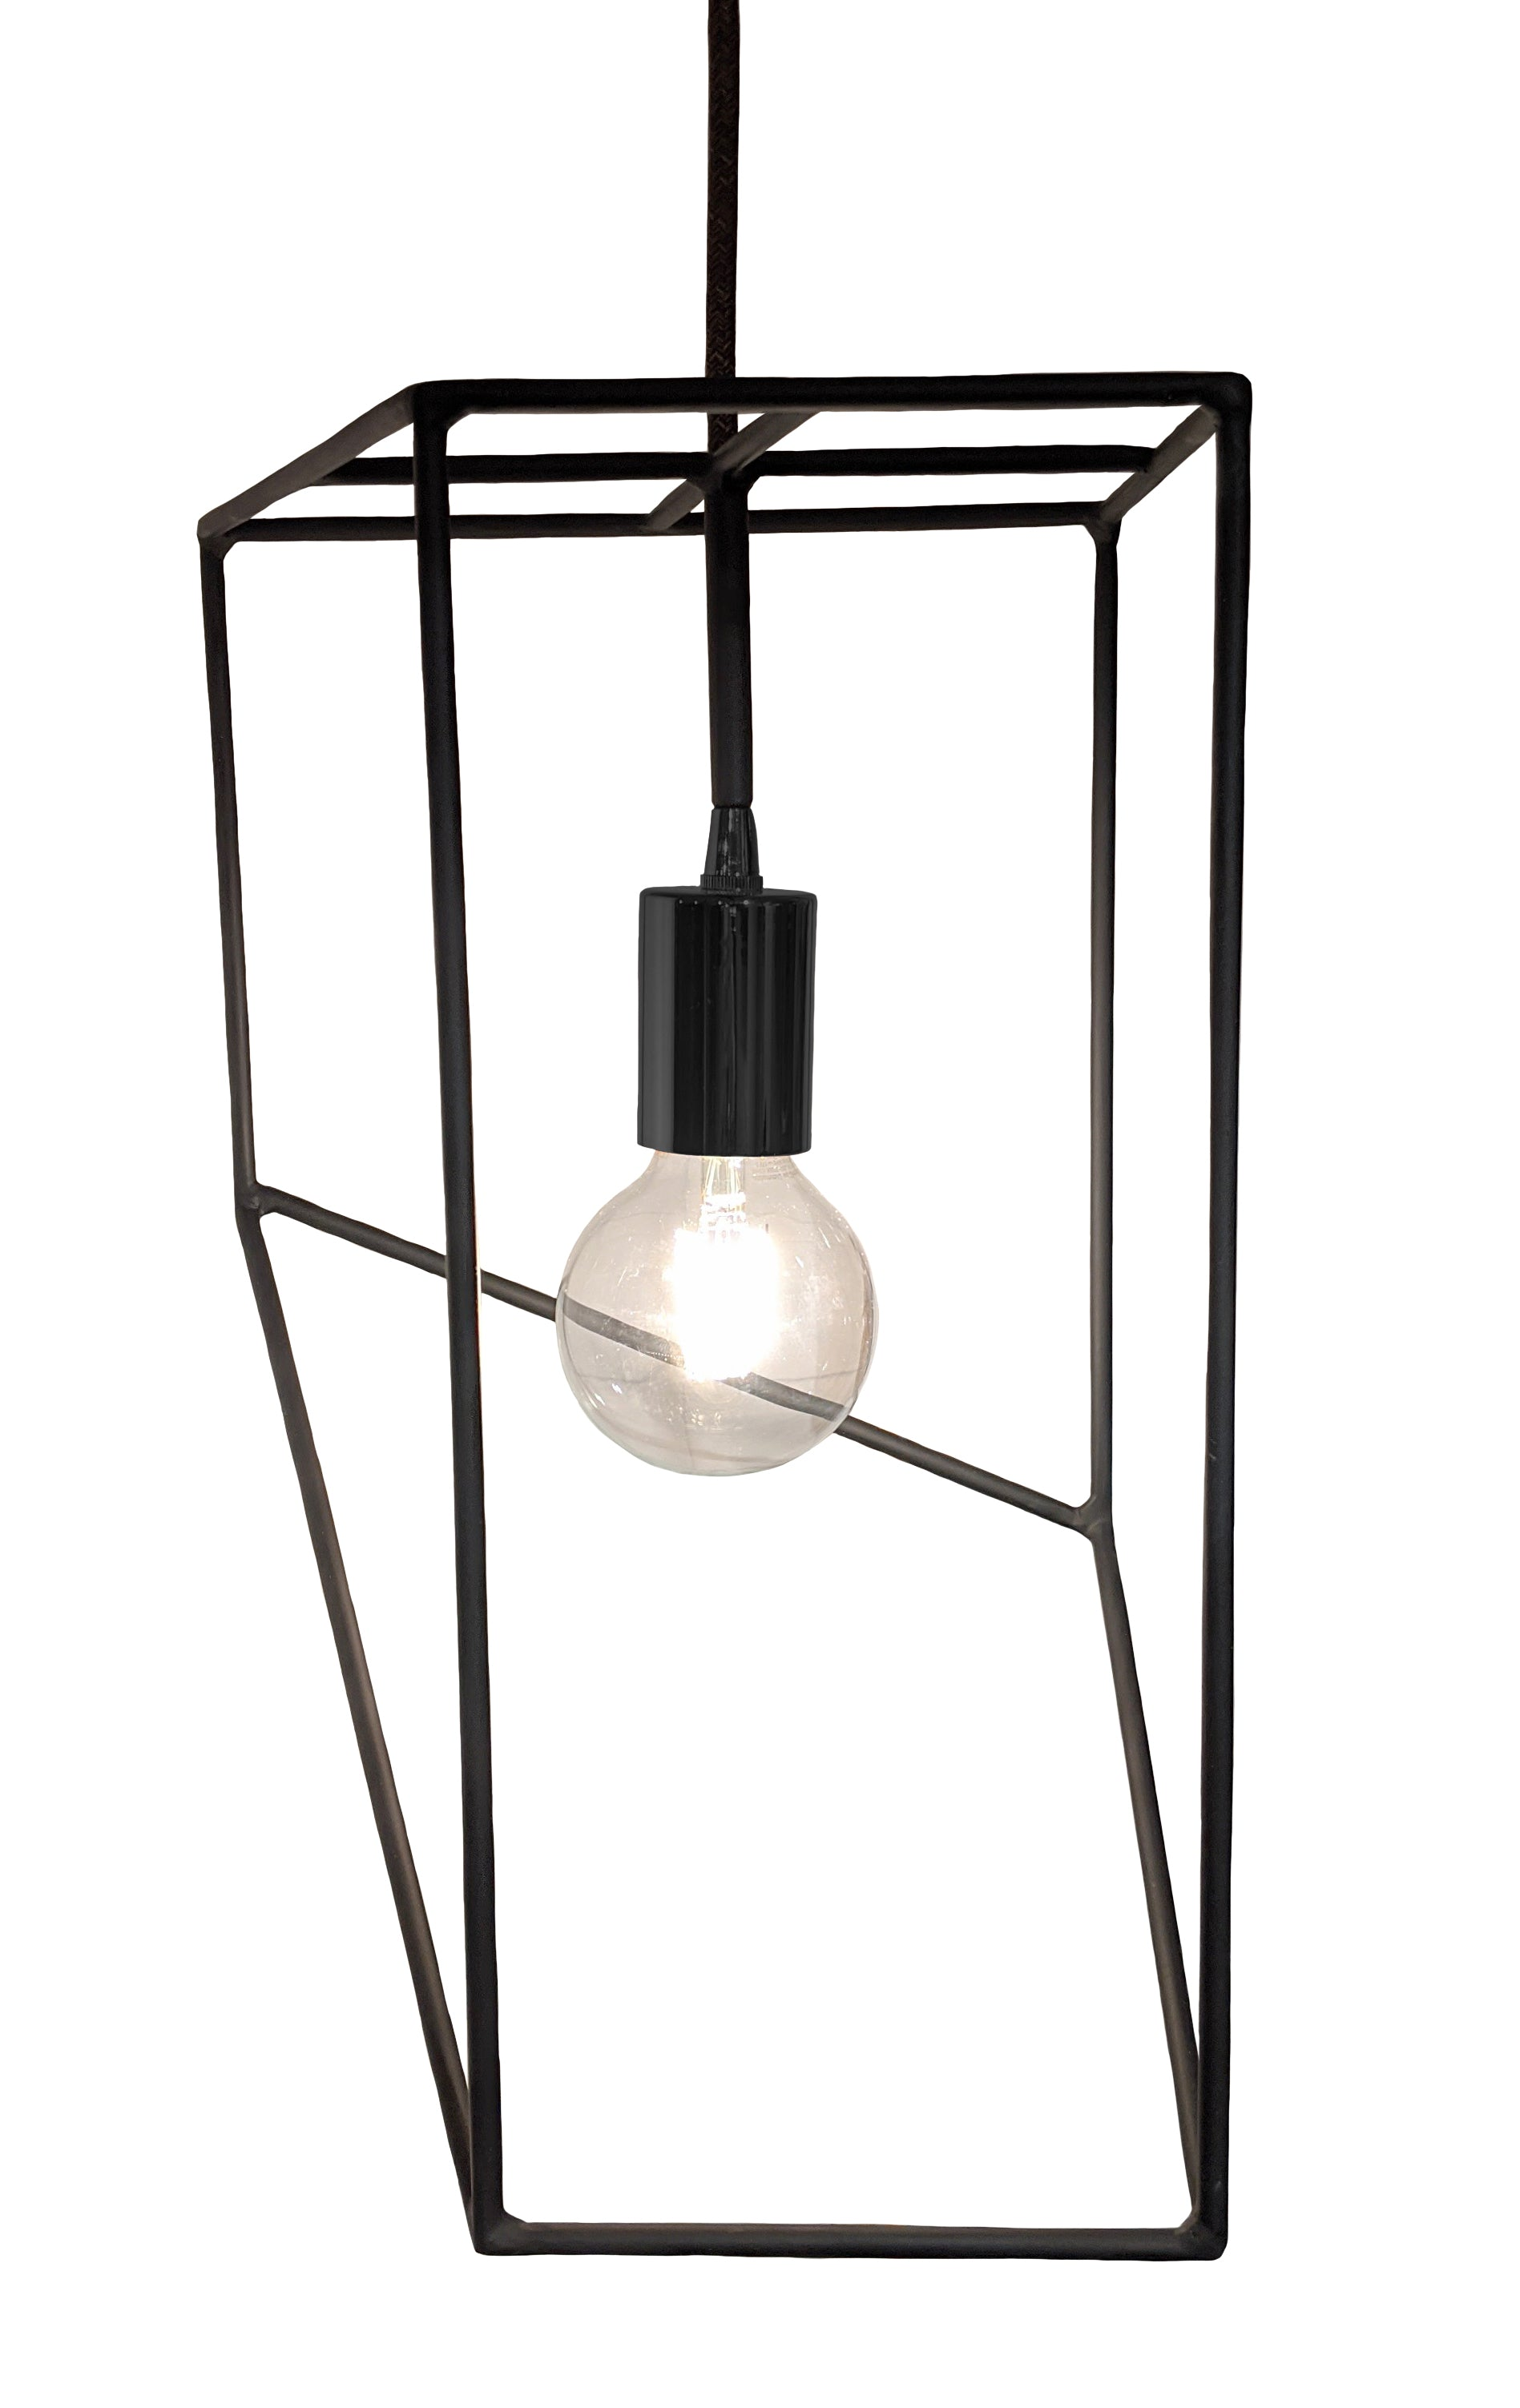 Luminaire Hexa (LL001) de luminaire Lünik / Hexa lighting fixture (LL001) by Lünik Lighting